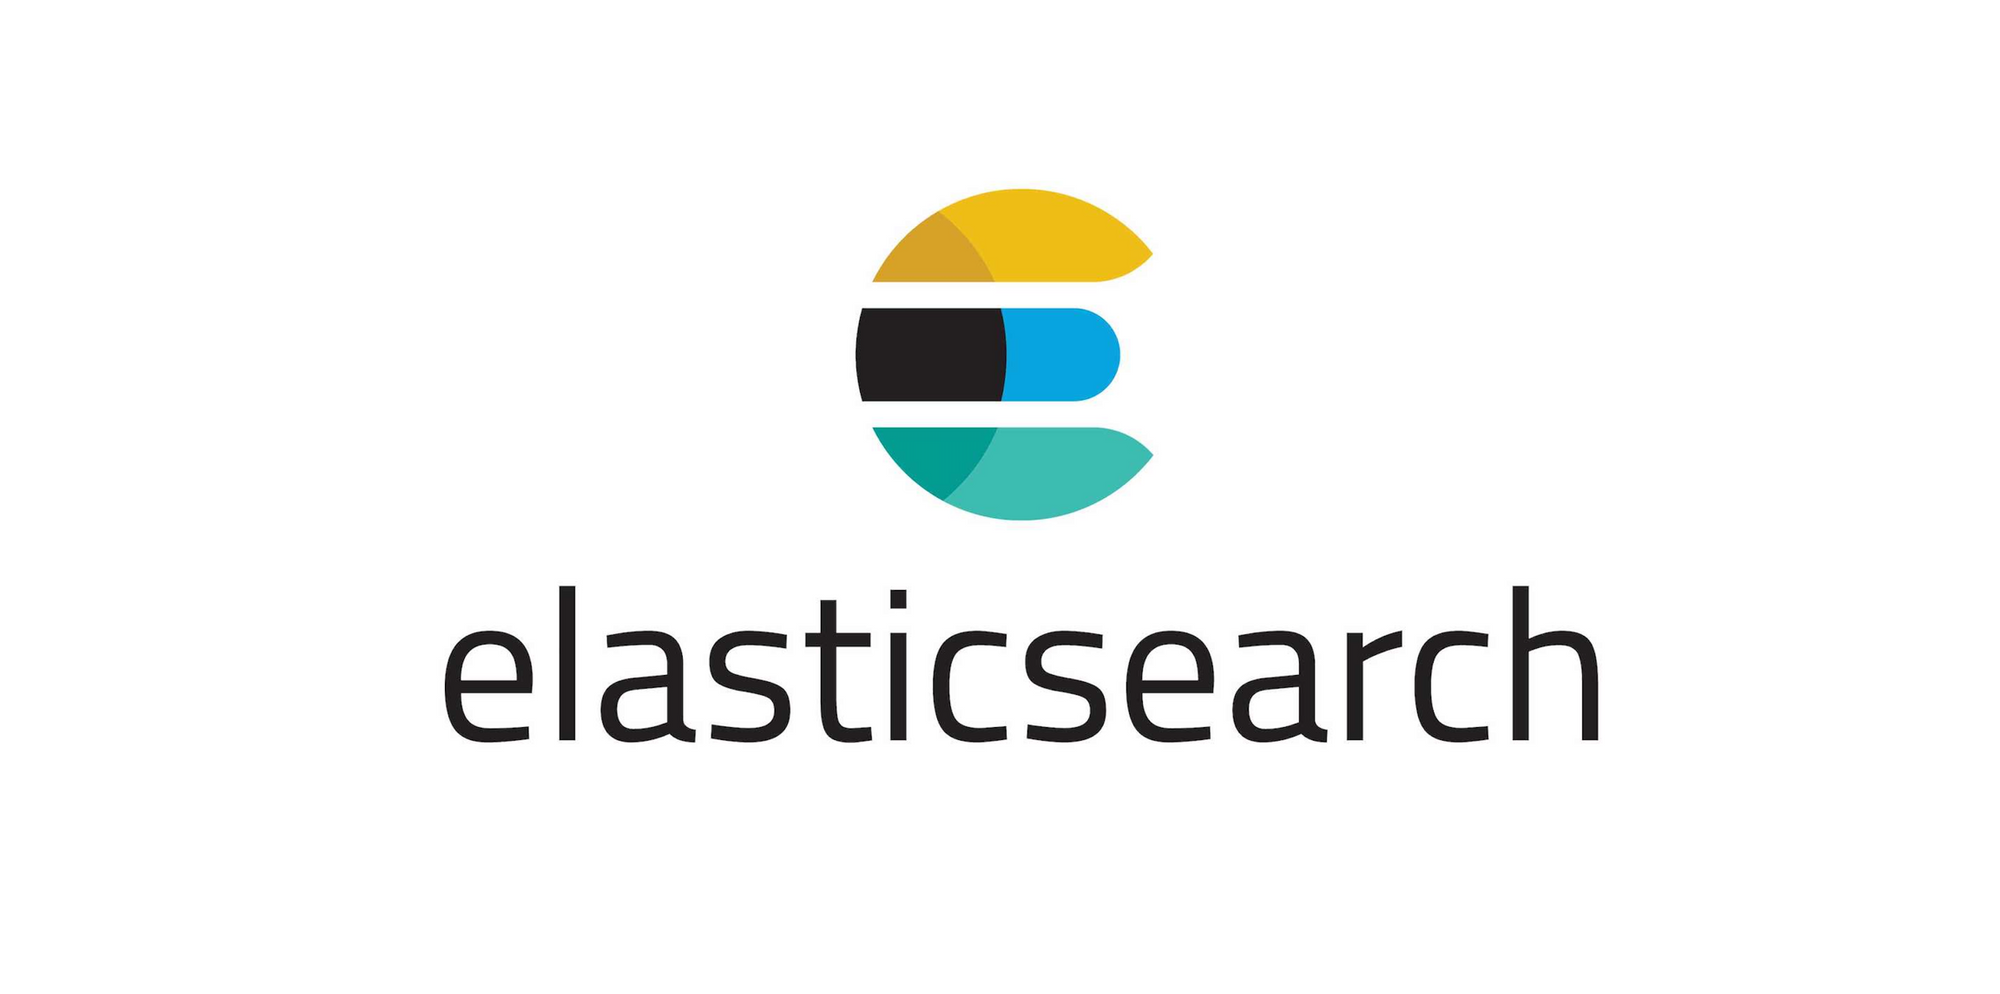 Elasticsearch - IDs are hard